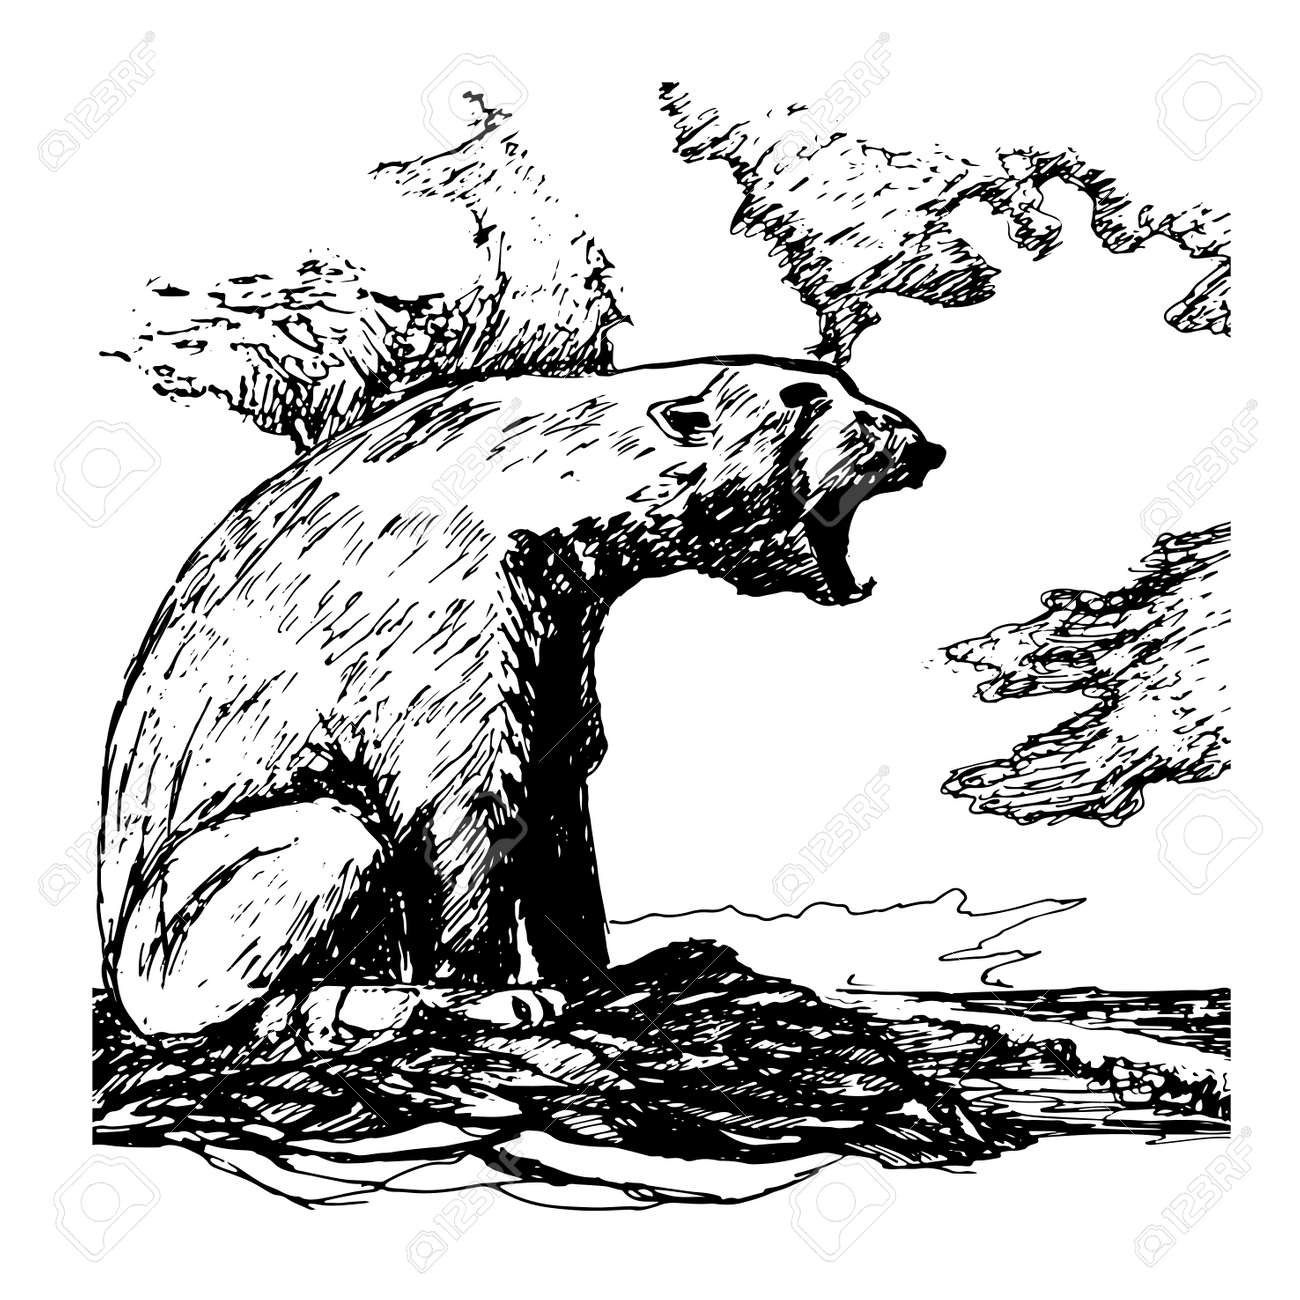 picture polar bear sketch royalty free cliparts vectors and